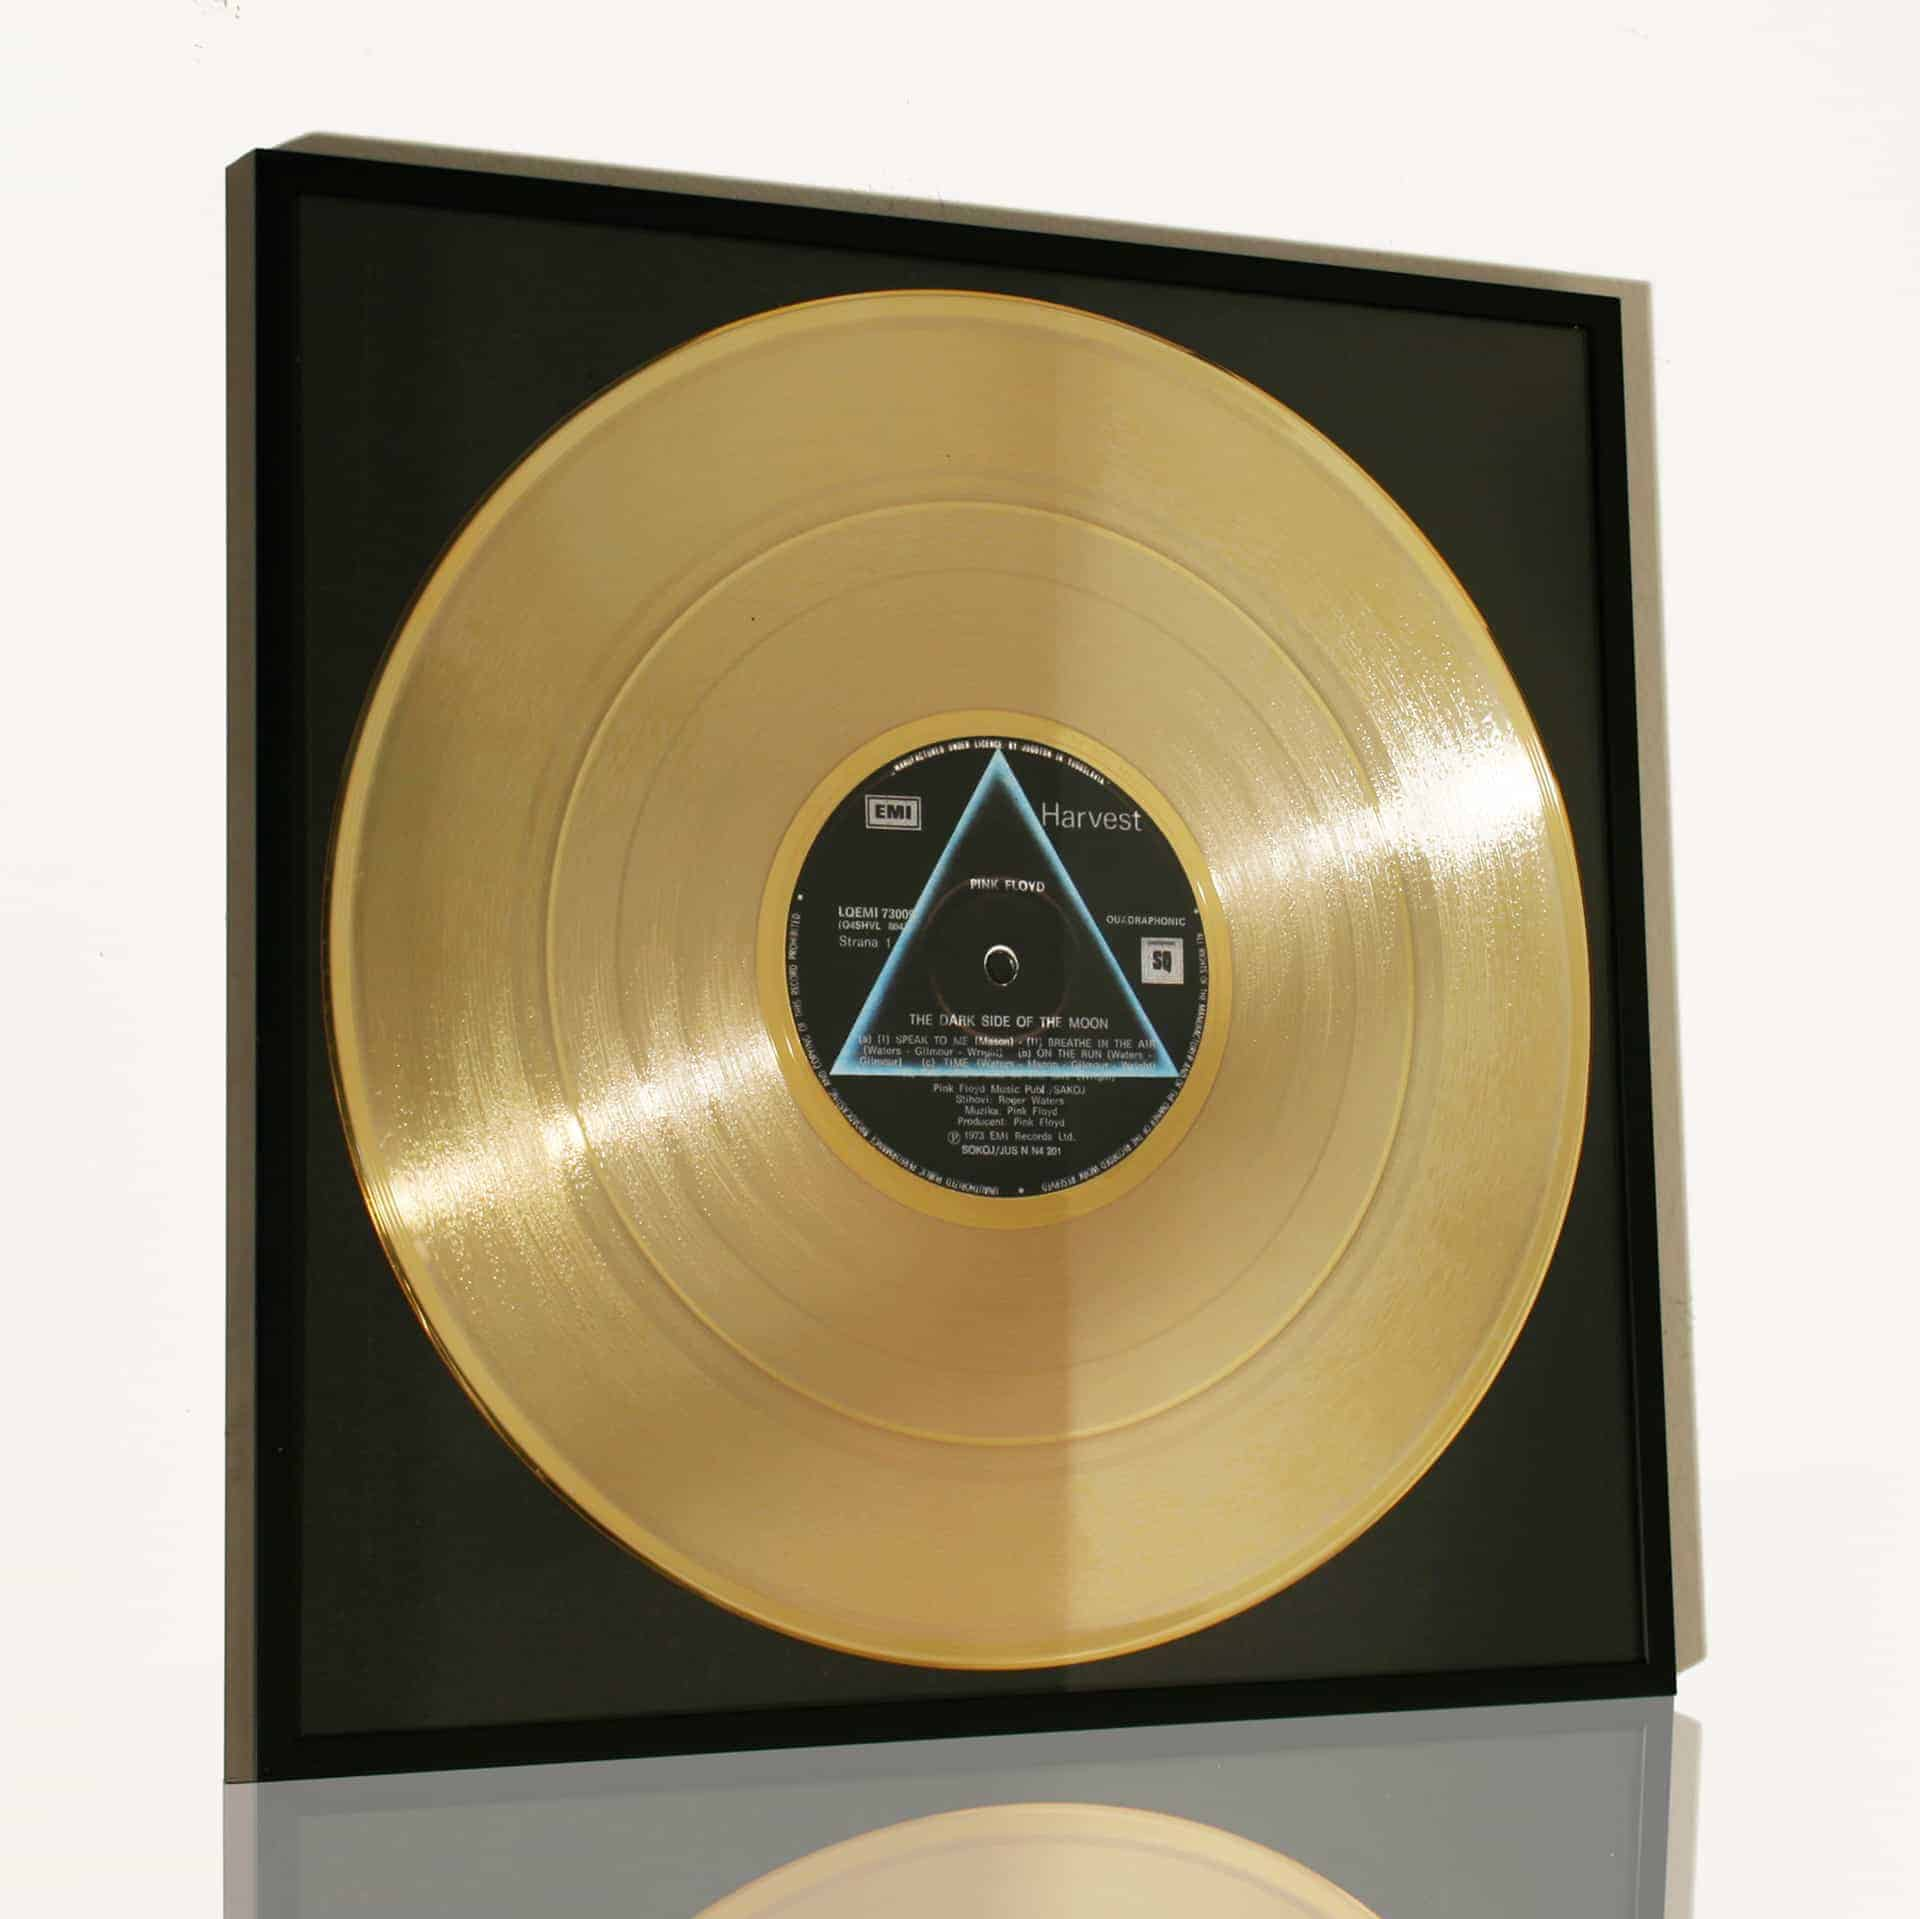 PINK FLOYD – THE DARK SIDE OF THE MOON: DISCO D'ORO DA COLLEZIONE INCORNICIATO